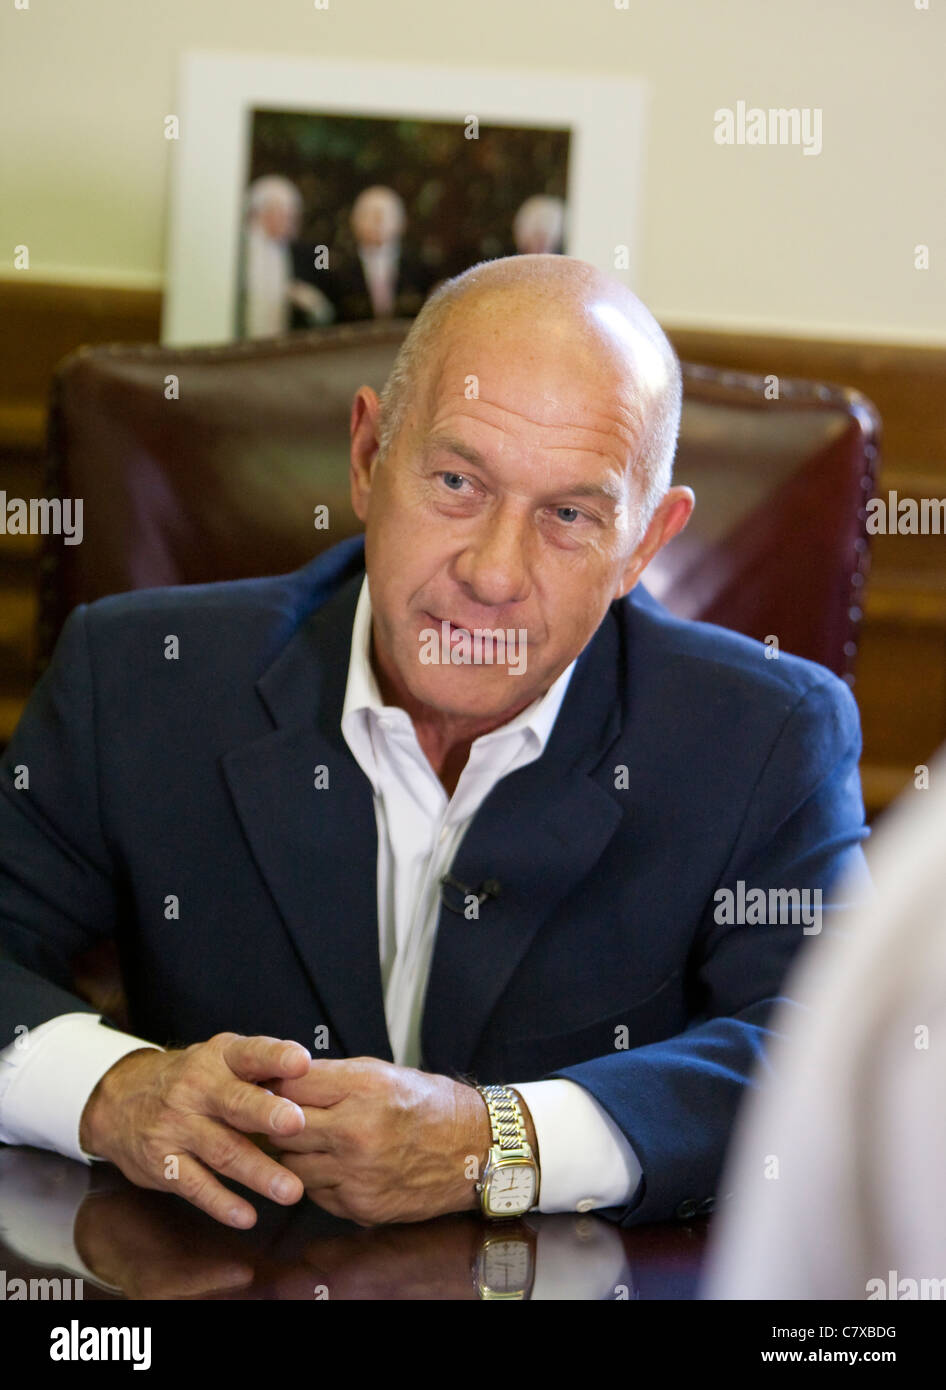 Texas State Senator John Whitmire a democrat from Houston works at his office in the State Capitol building in Austin, - Stock Image